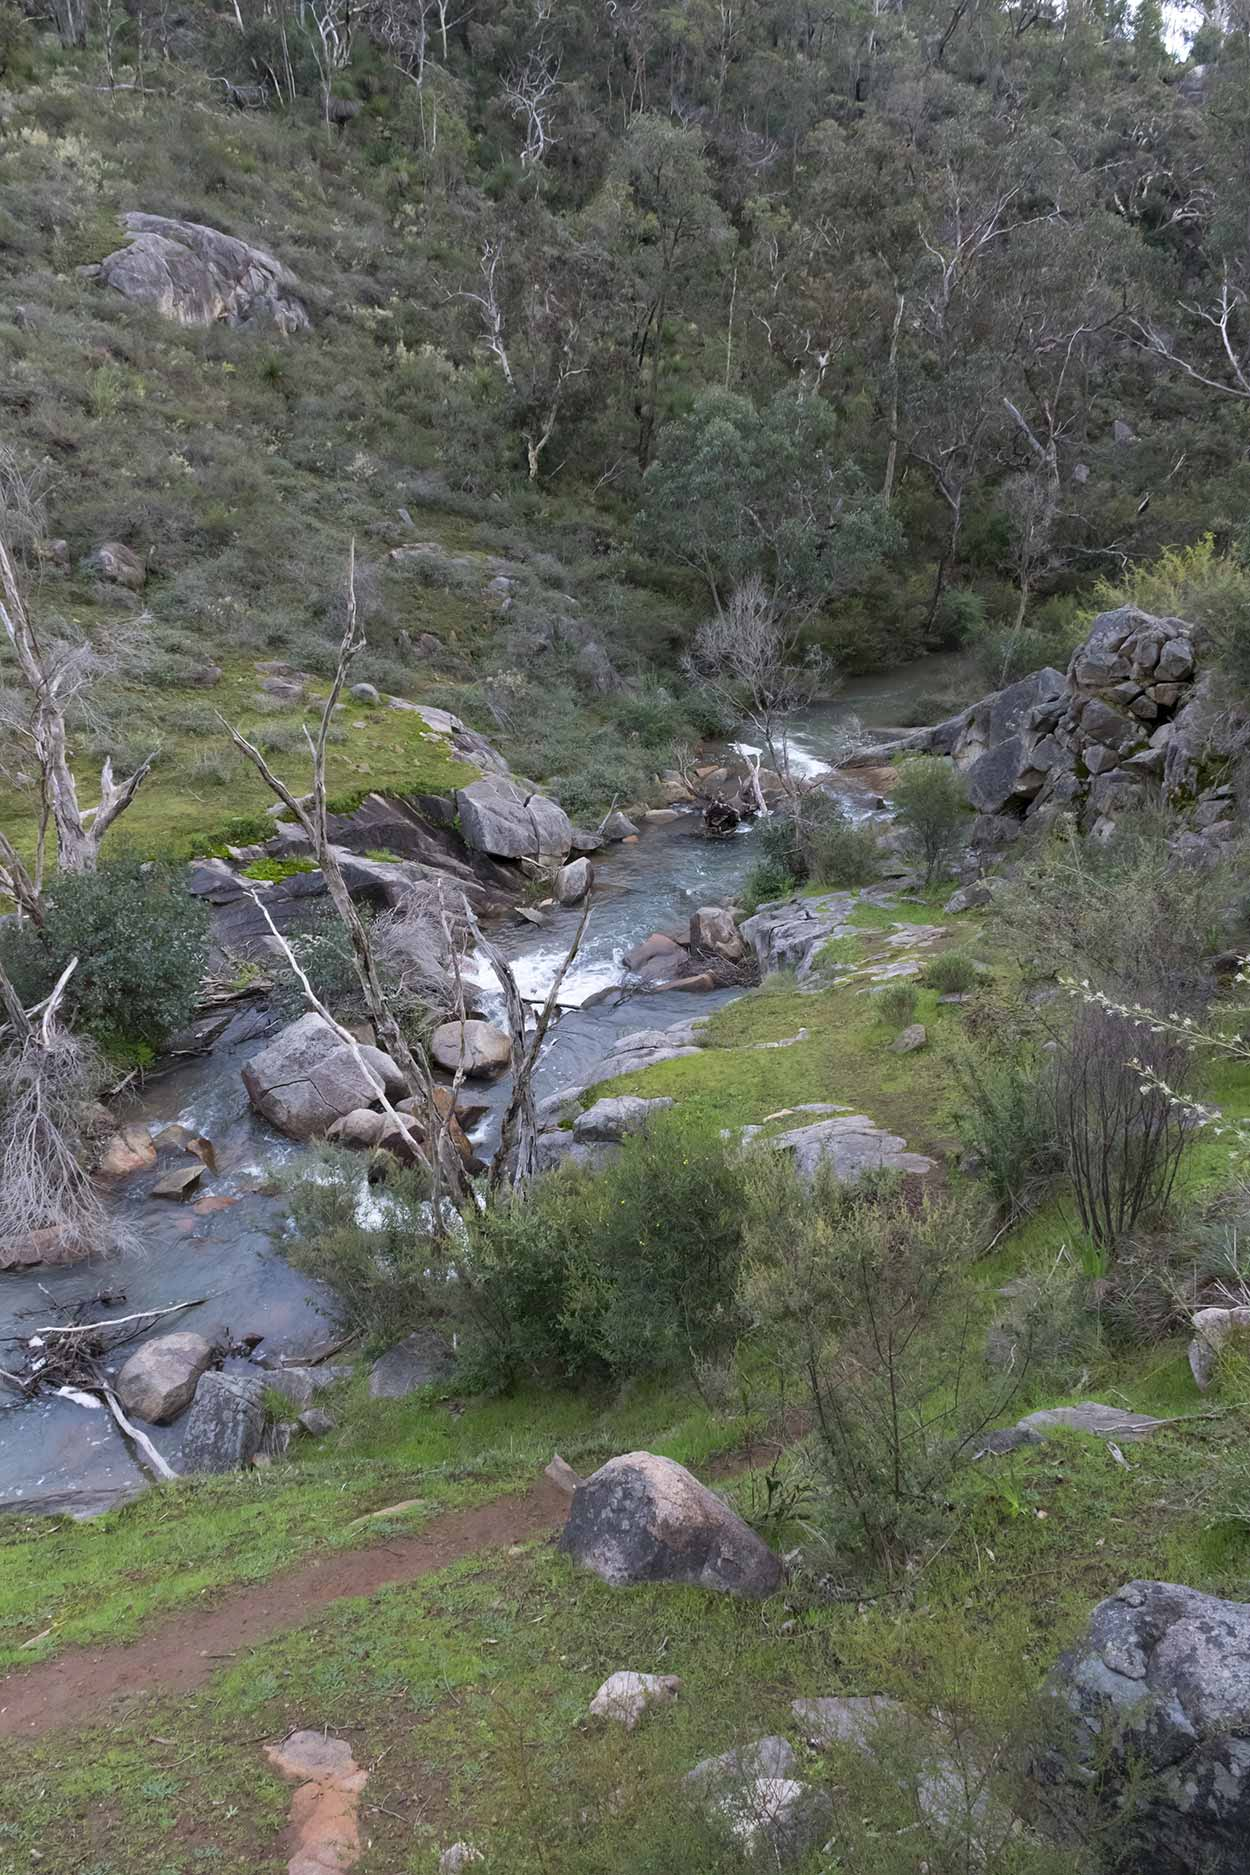 Rocky Pool, Kalamunda National Park, Perth, Western Australia